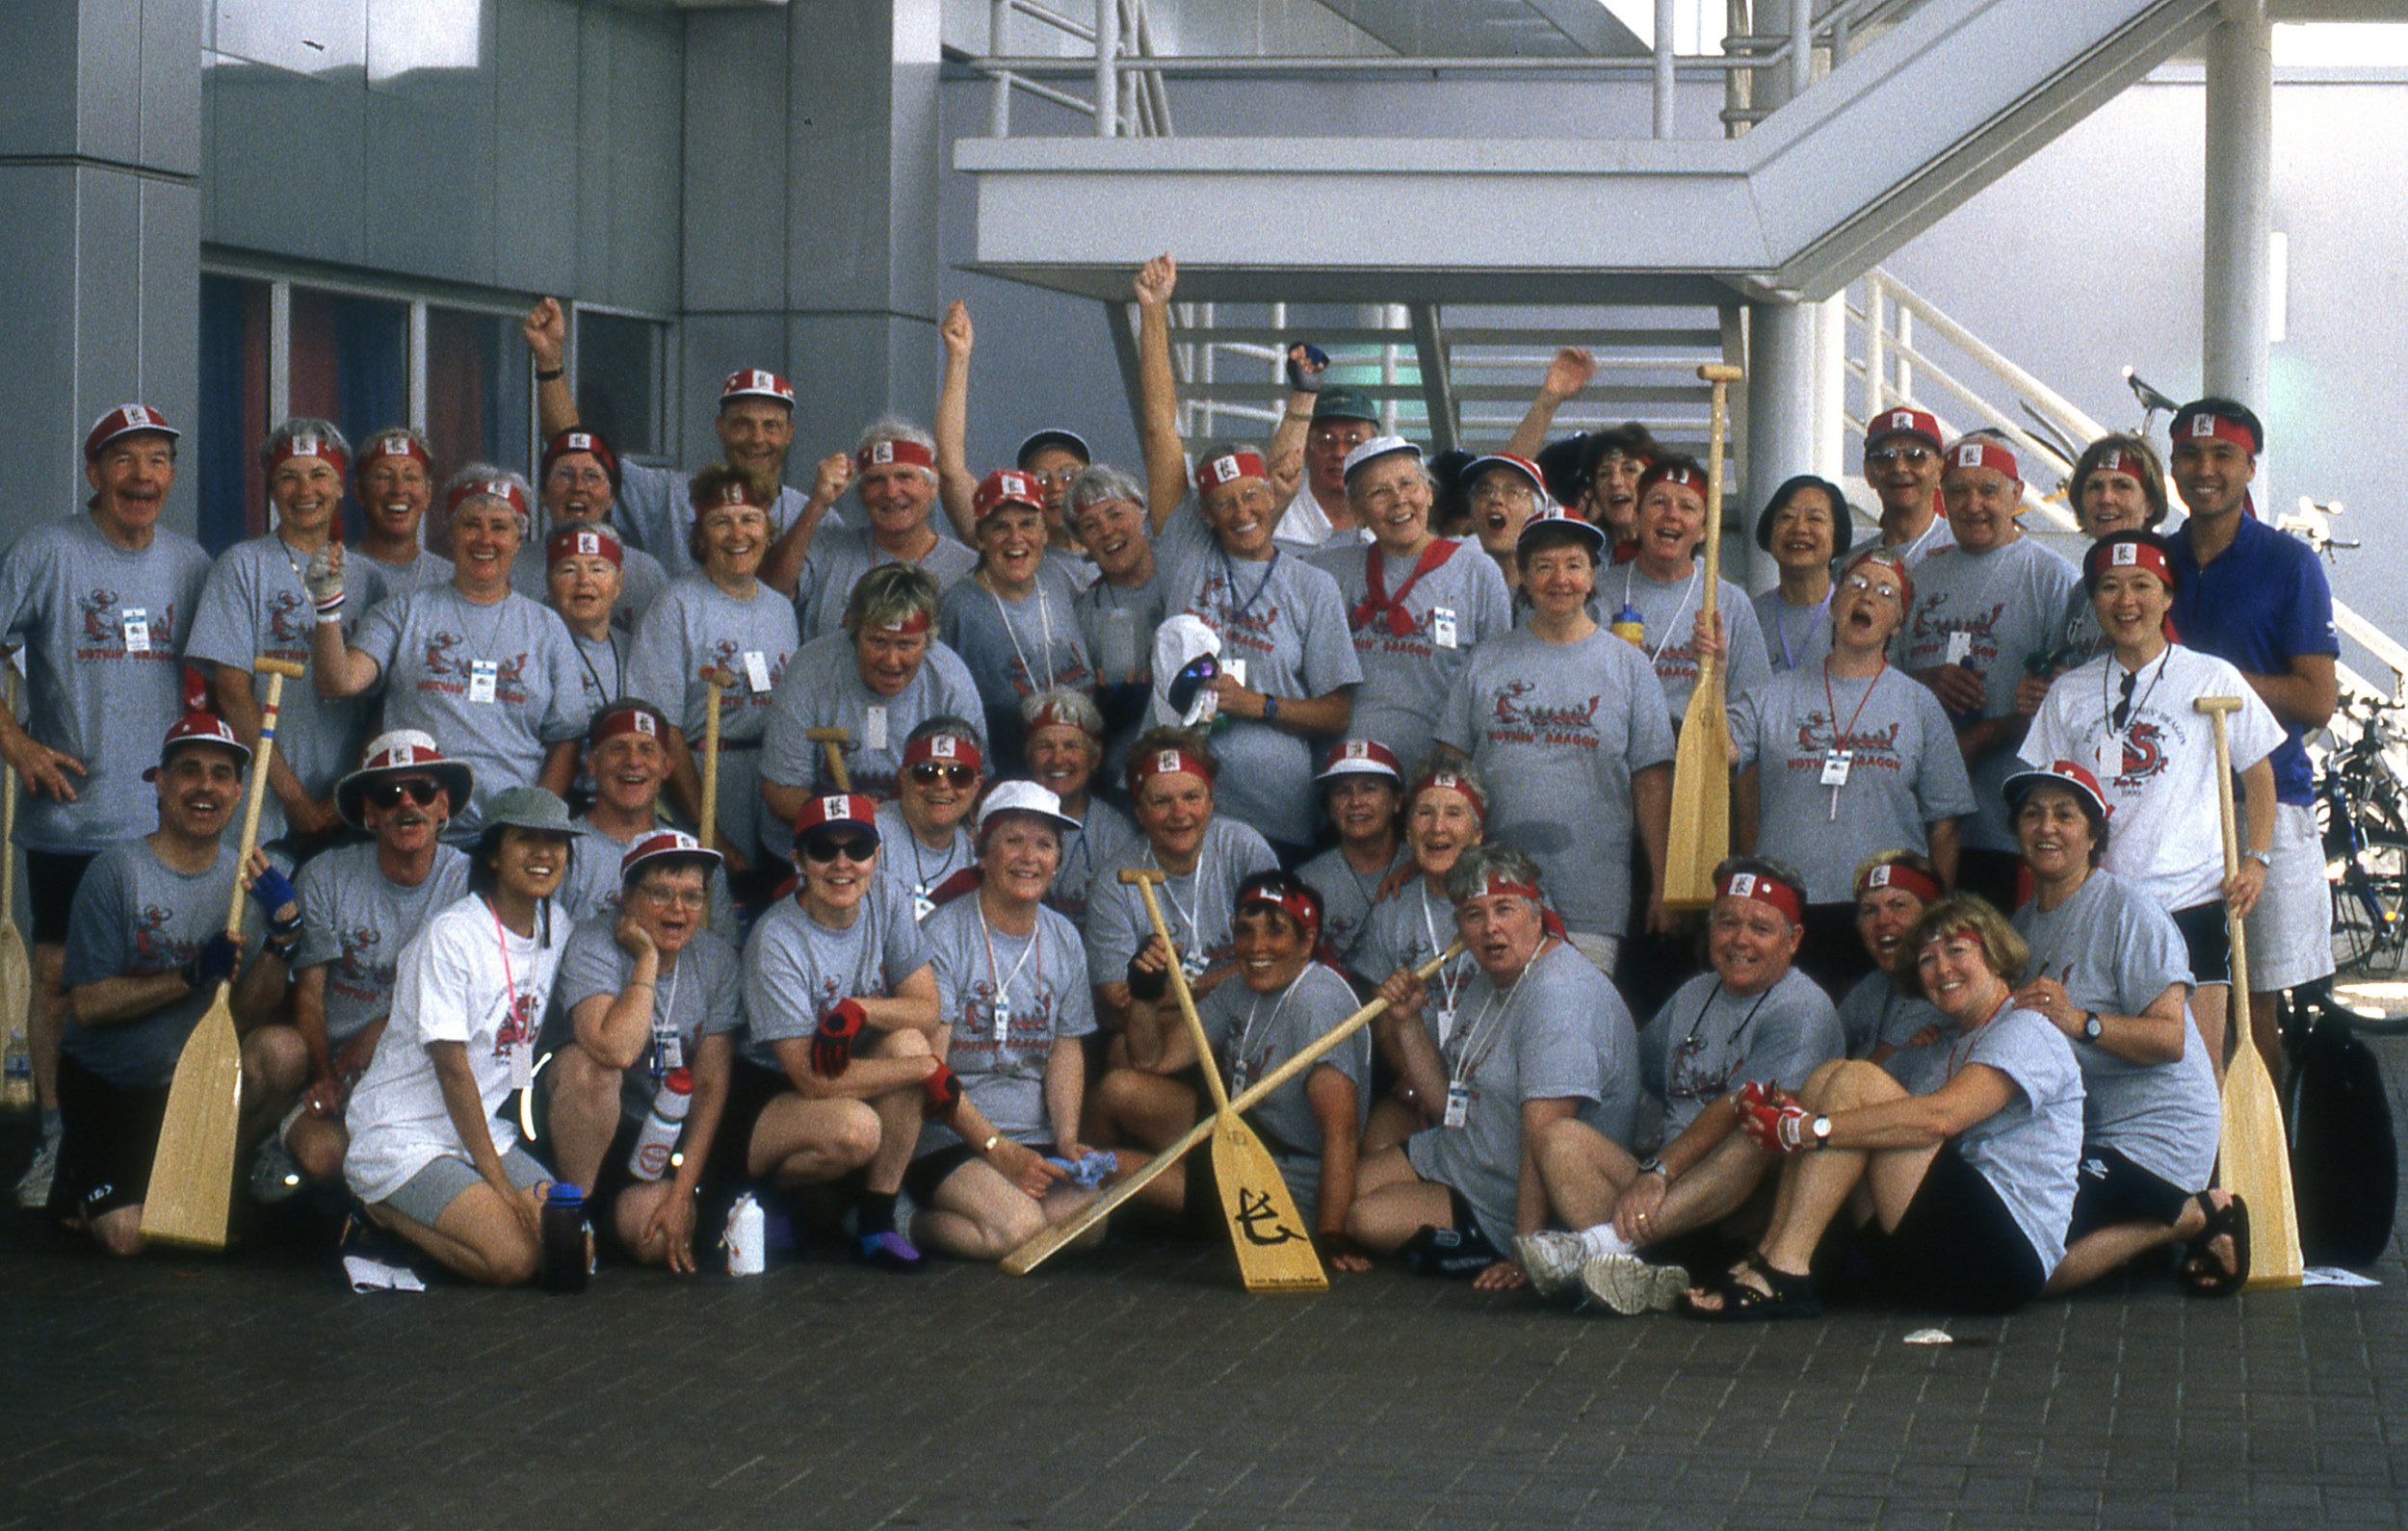 Nothin' Dragon team photo (2000) vintage racing shirts and wooden paddles (no sign of carbon fibre paddles yet). Can you spot Dan, Pat and Ann?